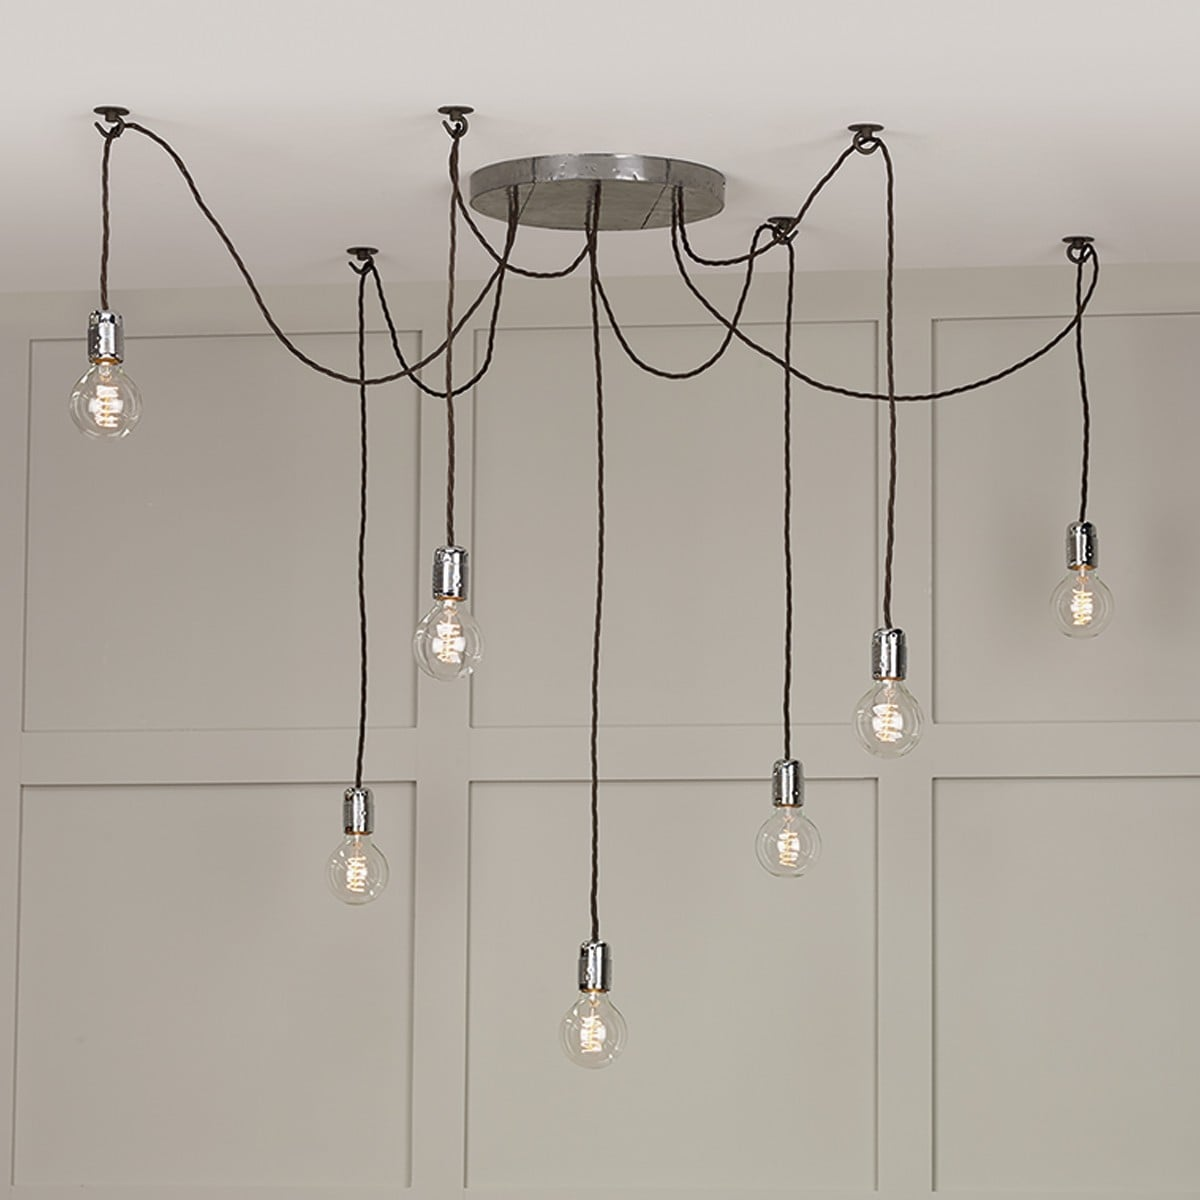 David Hunt Lighting HUC3439 Huckleberry 7 Light Pendant in Lead finish (Fitting only)